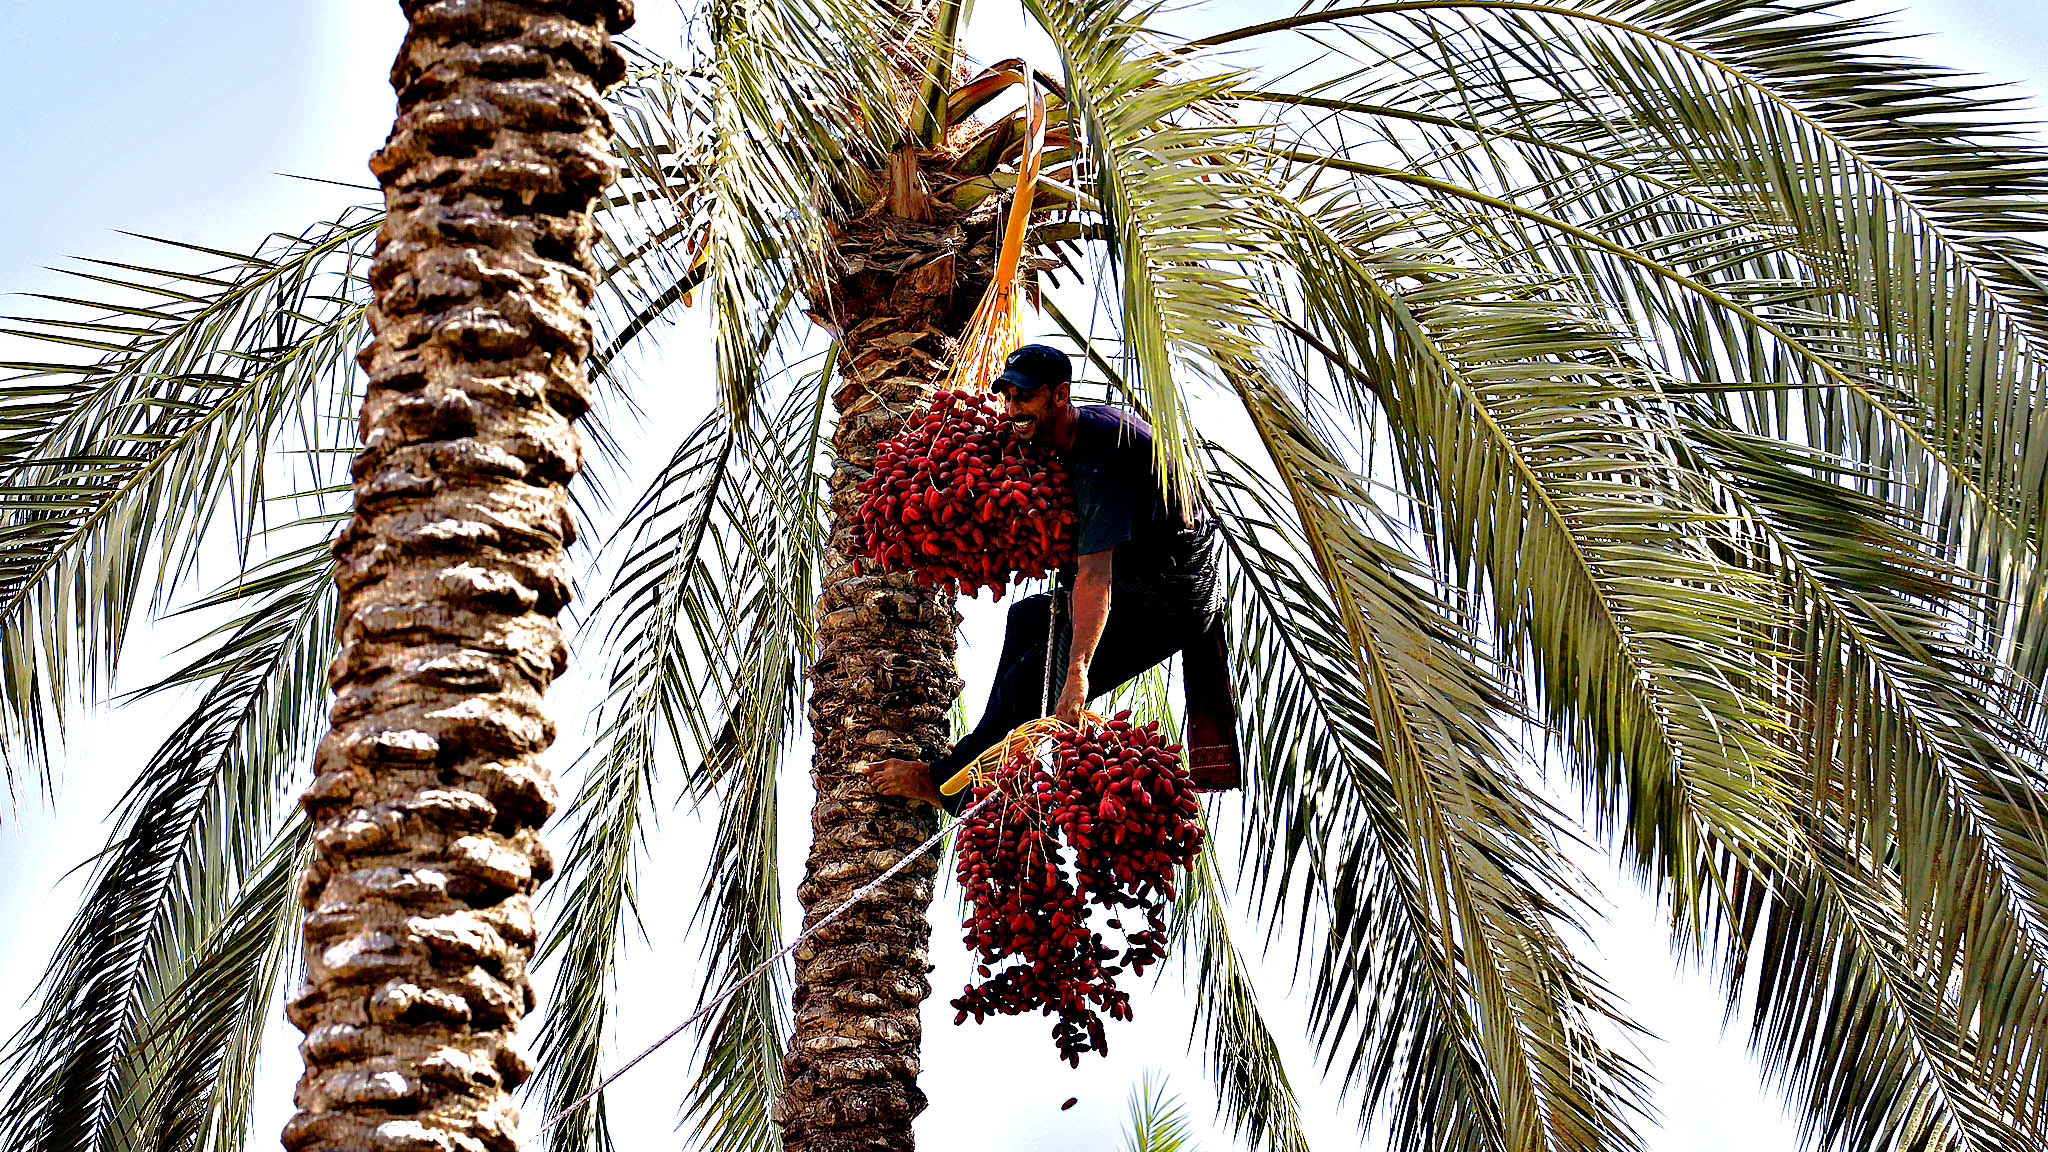 A Palestinian farmer harvests dates from a date palm tree in Khan Yunis, in the southern Gaza Strip